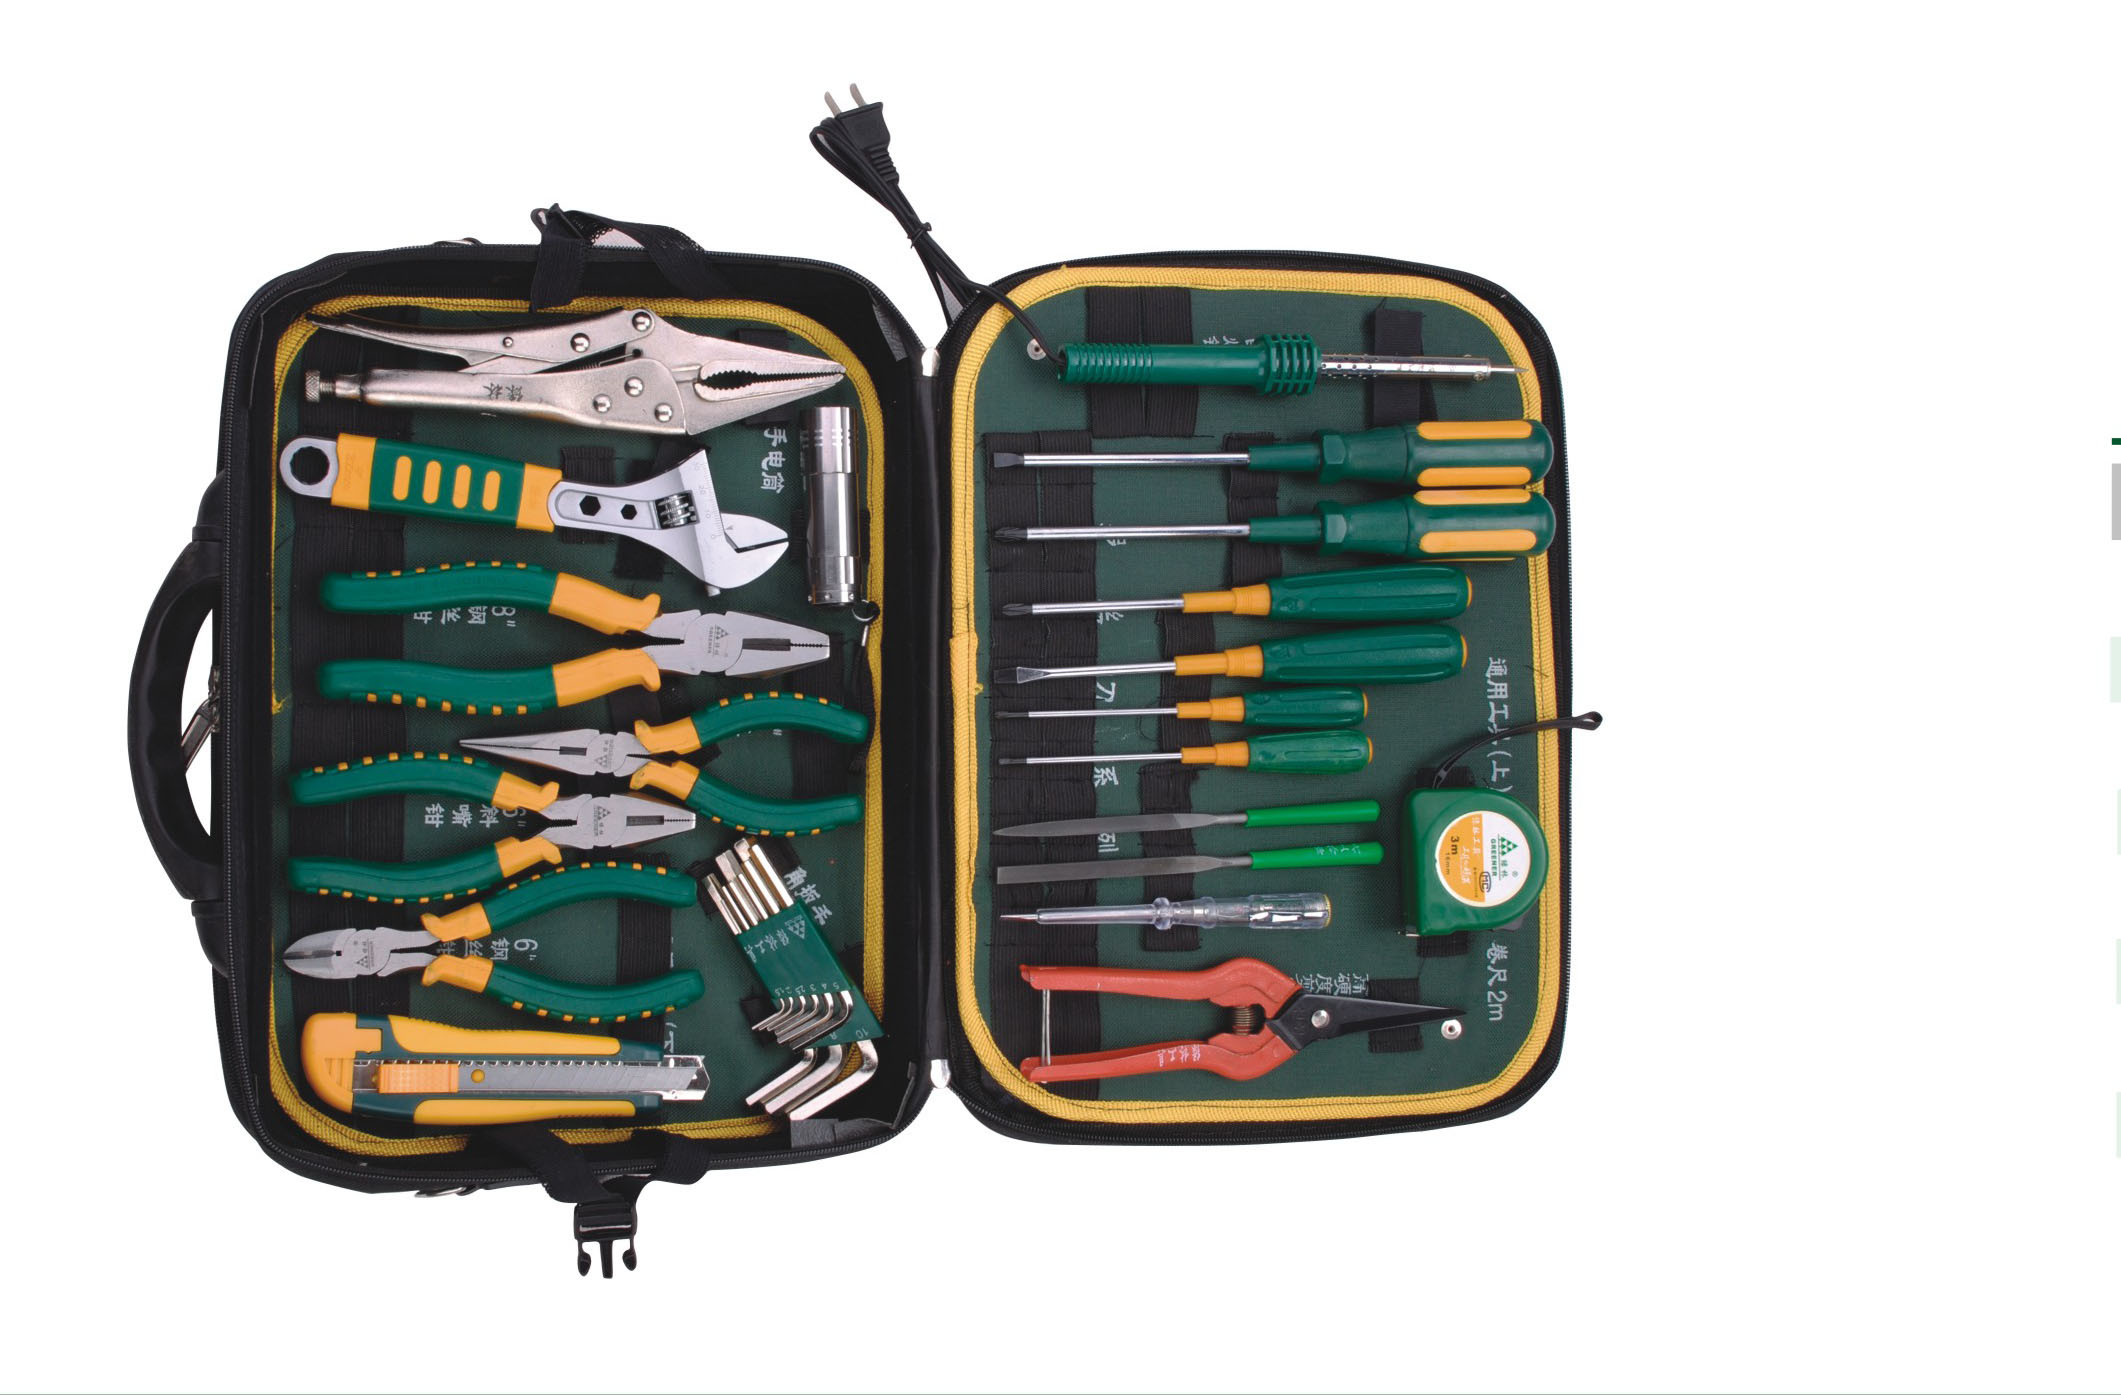 High Quality Repair Tool Set From Greenery Tools